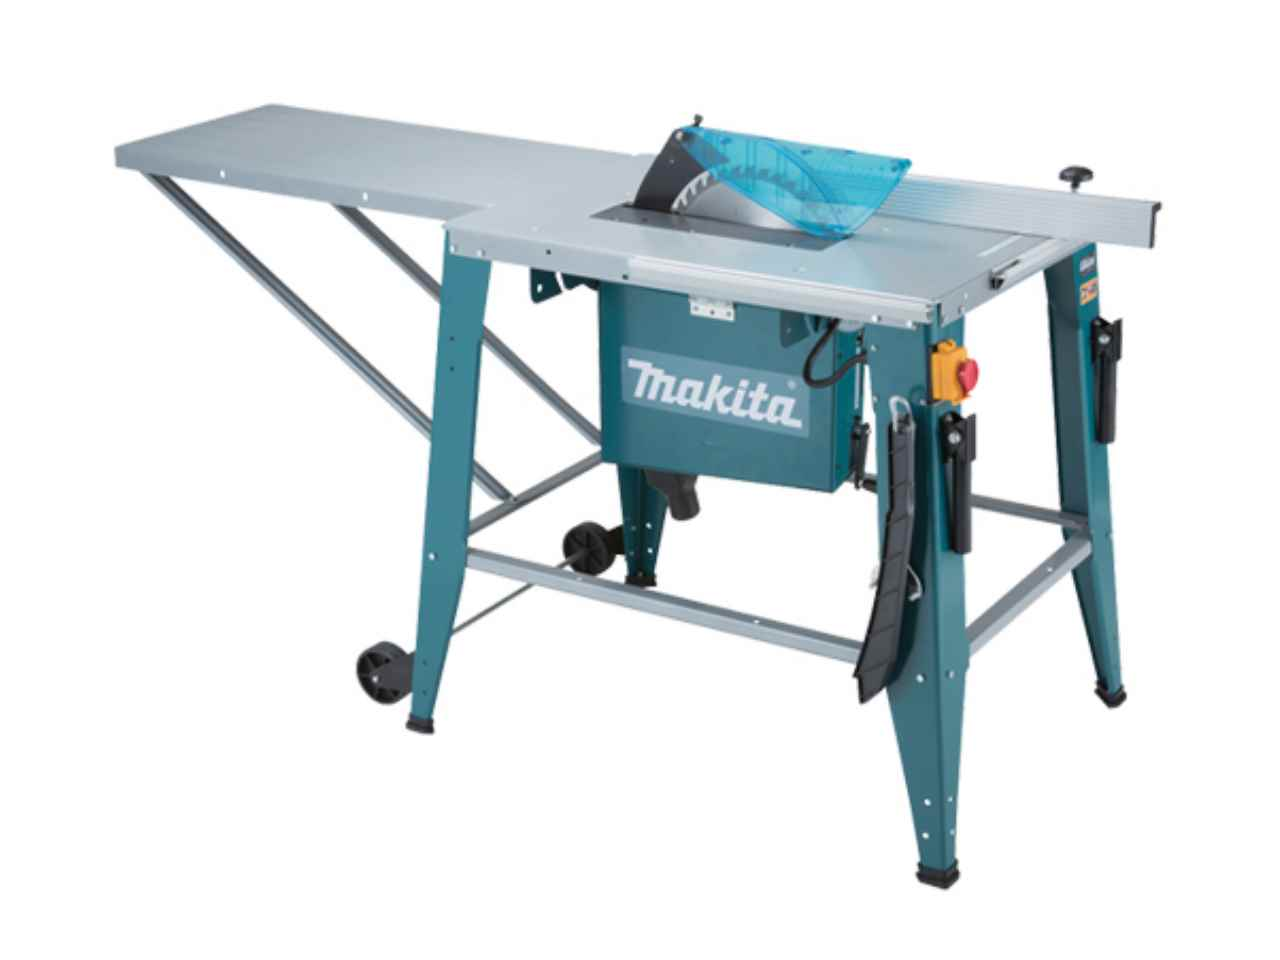 makita 2712 1 110v 315mm table saw